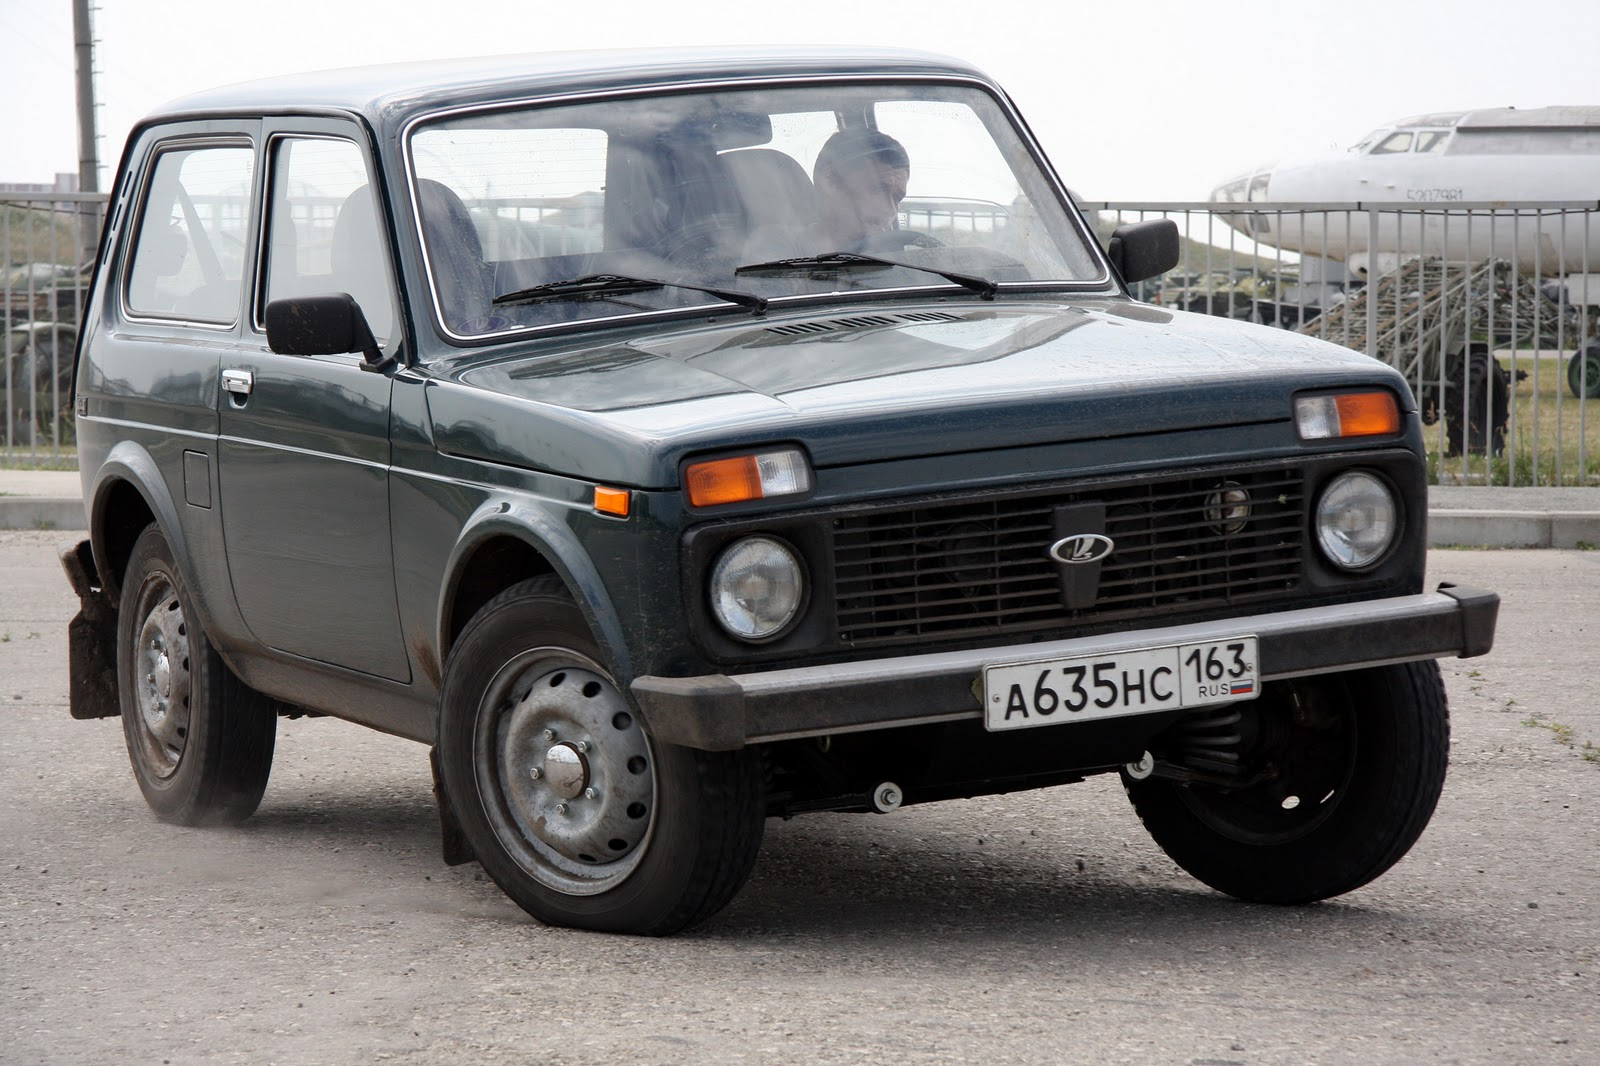 grau 4x4 offroad lada niva 34 anos do lada niva. Black Bedroom Furniture Sets. Home Design Ideas